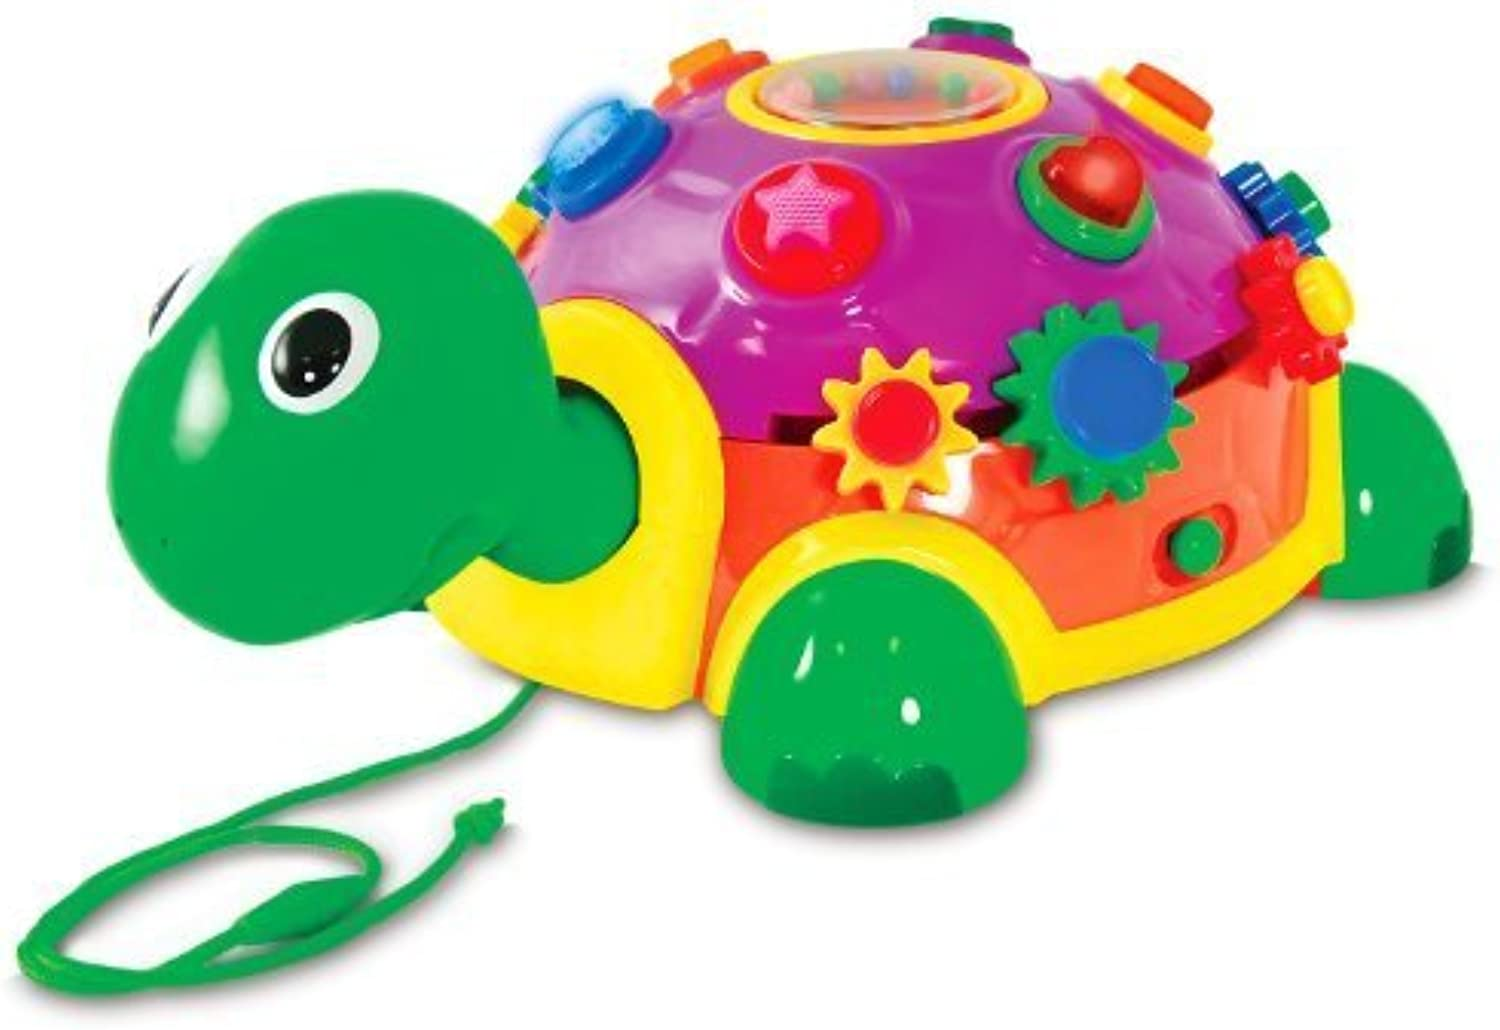 The Learning Journey 199466 Funtime Activity Turtle by Learning Journey